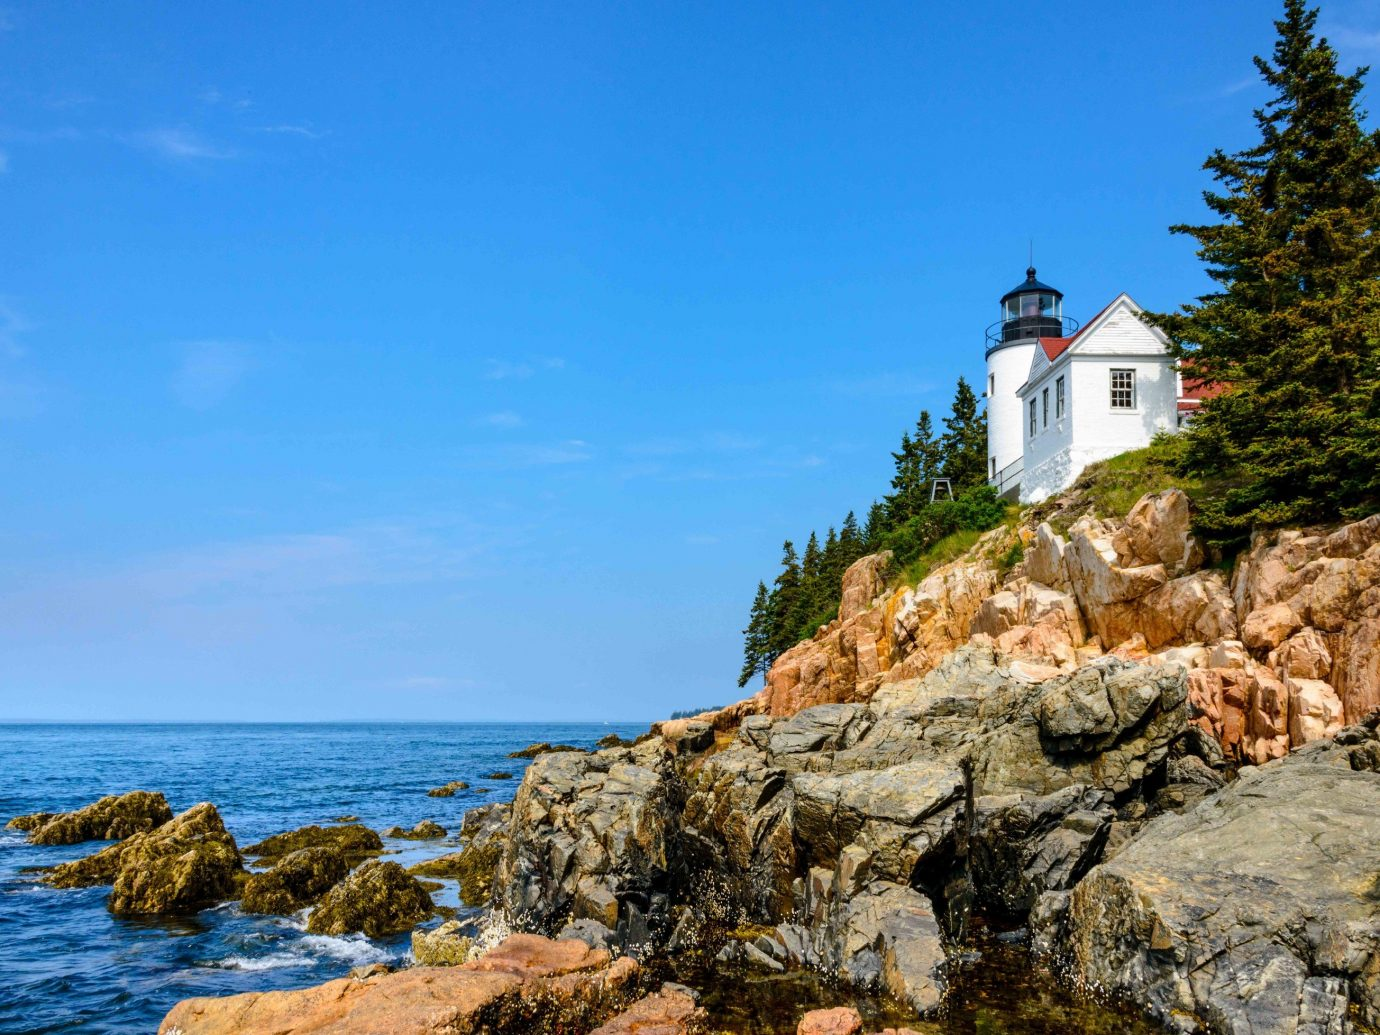 rock outdoor water rocky Coast tower Sea shore Nature cliff vacation Ocean terrain cape cove lighthouse Beach bay stone